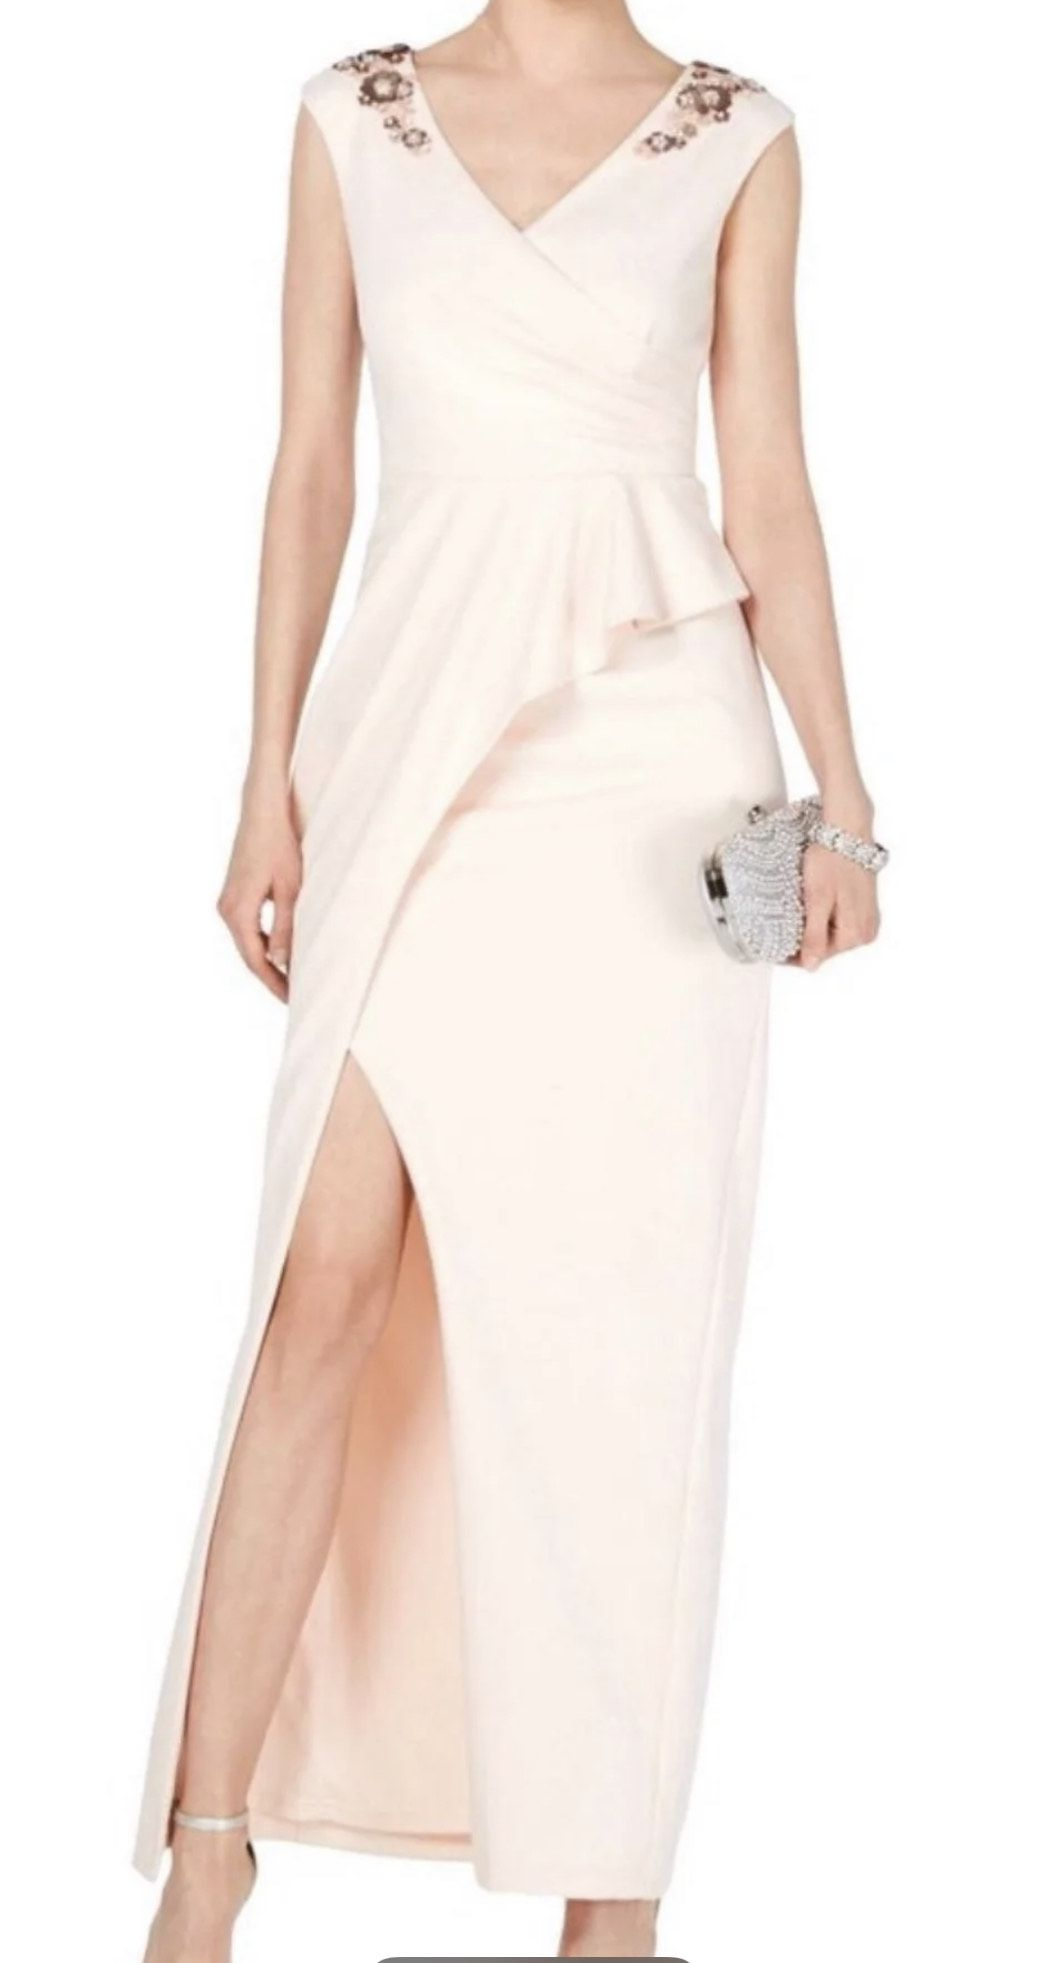 Adrianna Papell Embellished Peplum Gown Pink Size 10 Side Slit Short Height Straight Dress on Queenly